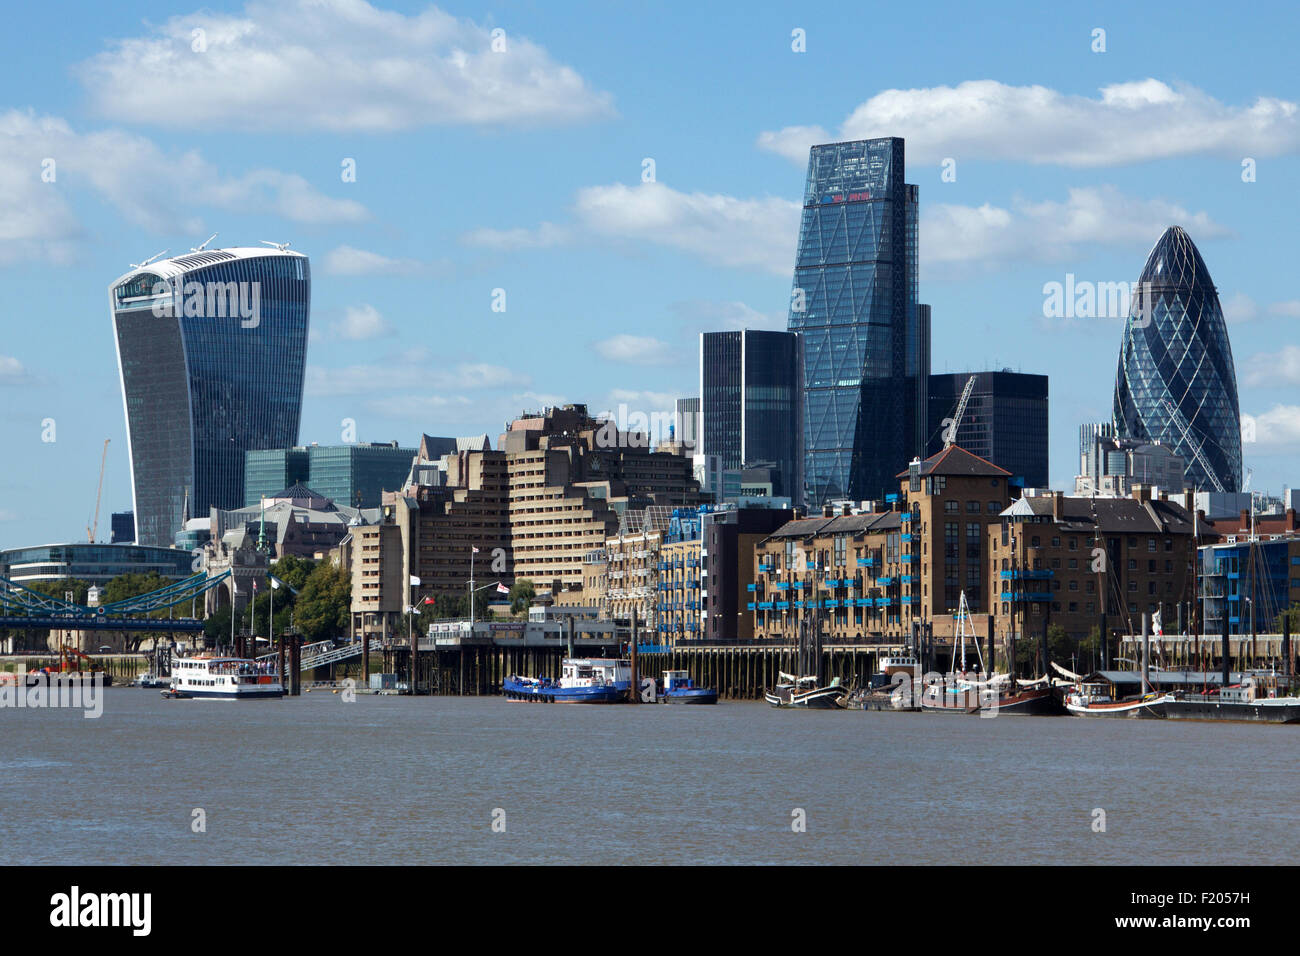 The City of London skyline from the River Thames including the 'Walkie Talkie', the 'Cheesegrater' - Stock Image